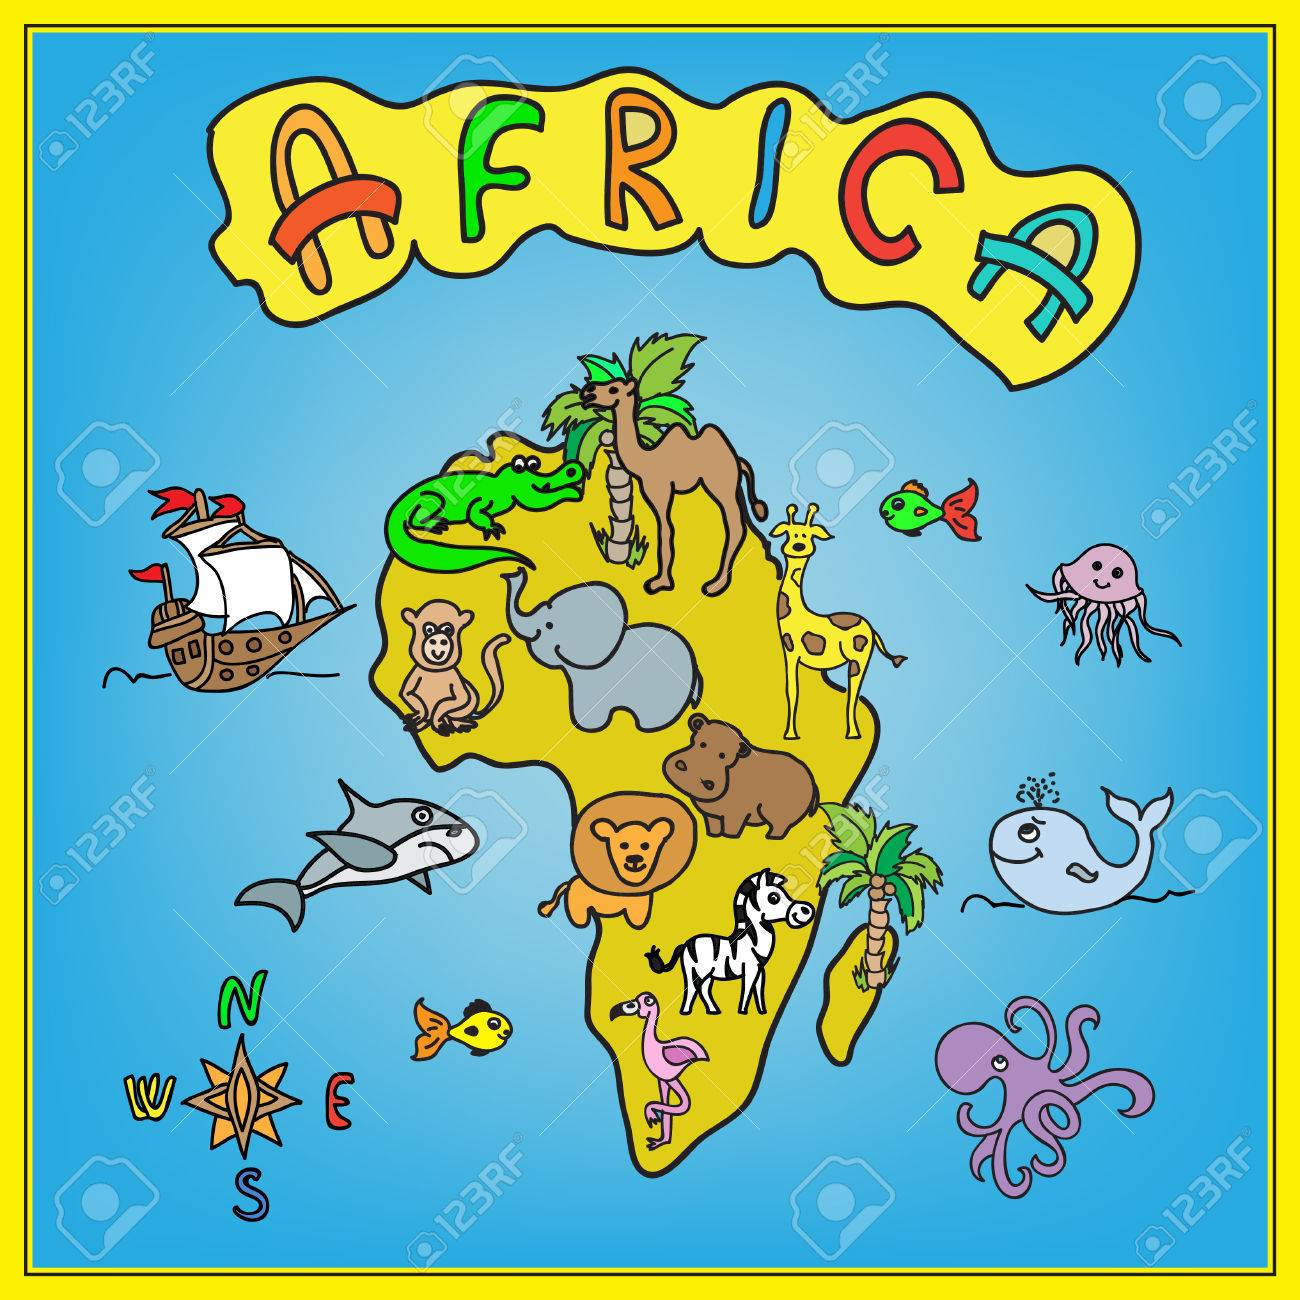 Africa Continent Kids Cartoon Map Stock Photo, Picture And Royalty